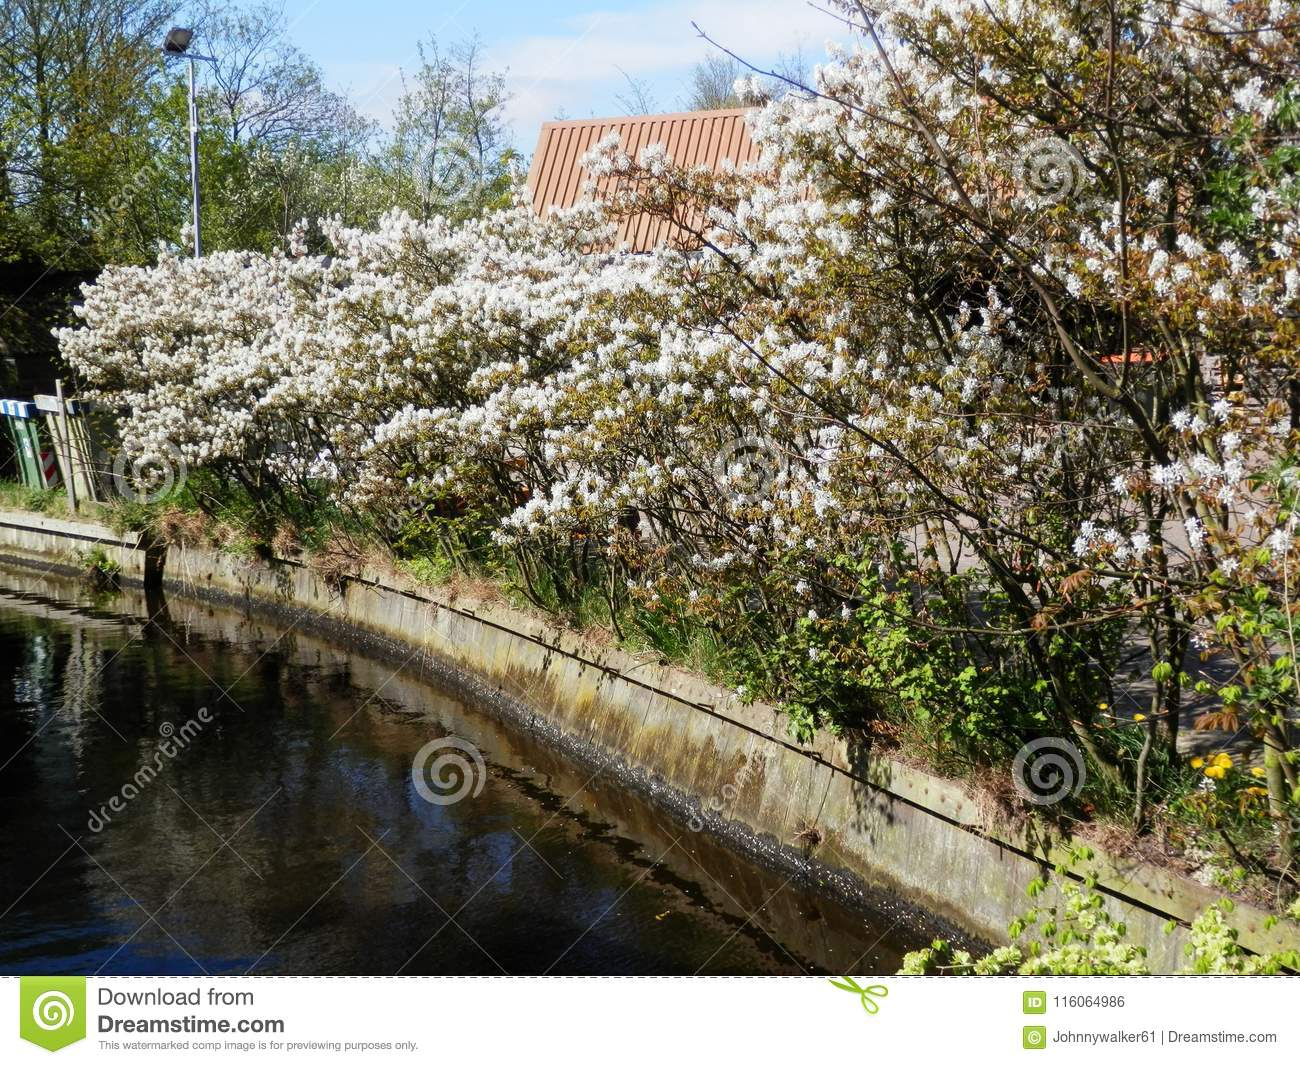 Flowering shrub on canal-side